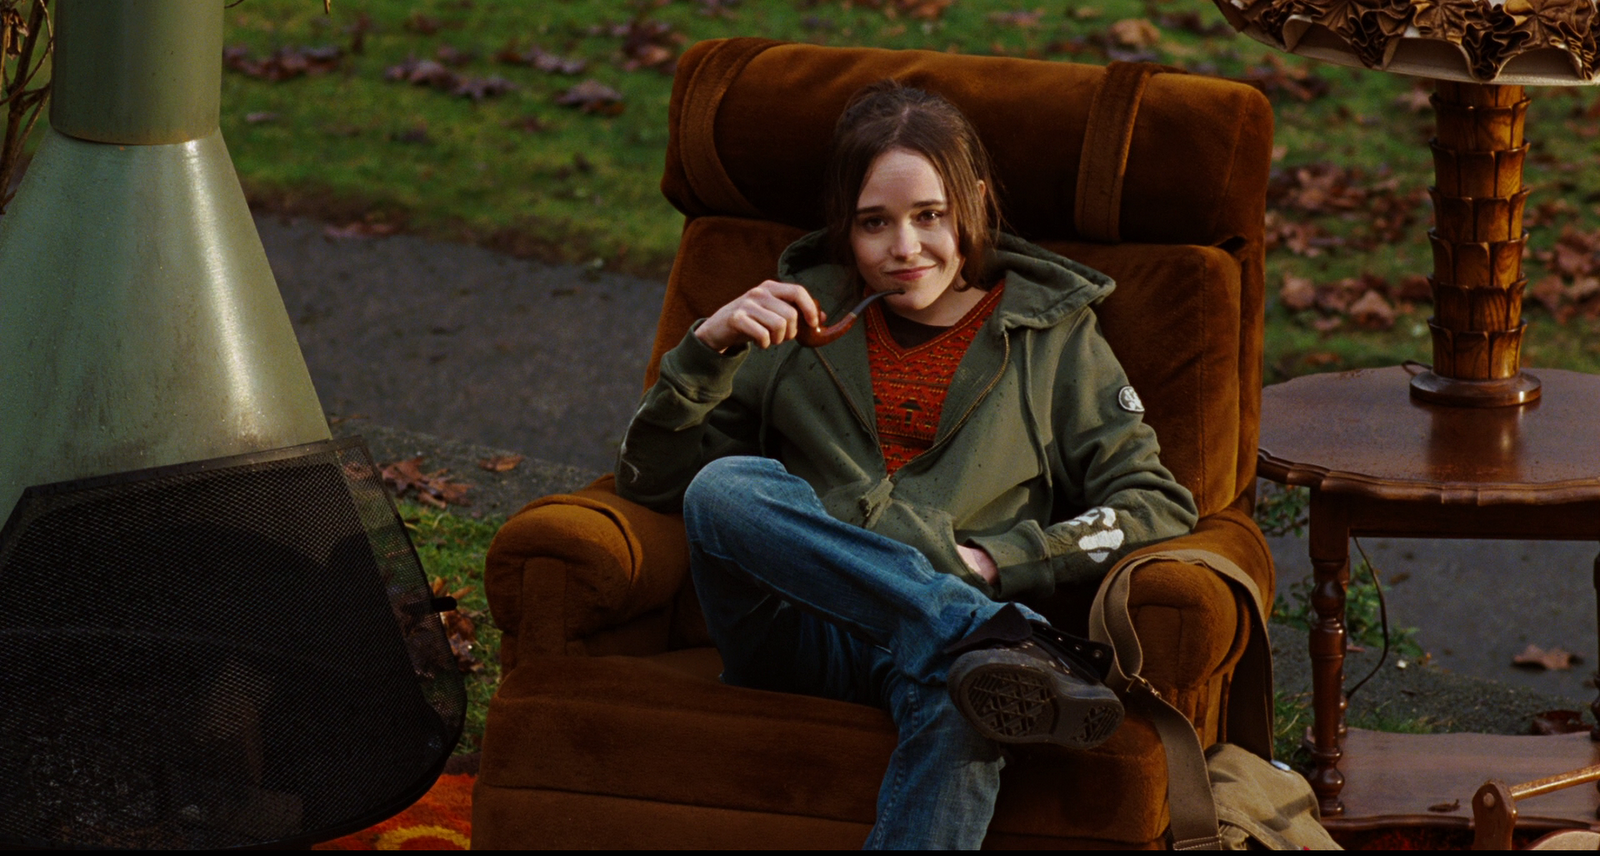 Photo of Elliott Page as Juno, sitting on a chair with a pipe in her hand.